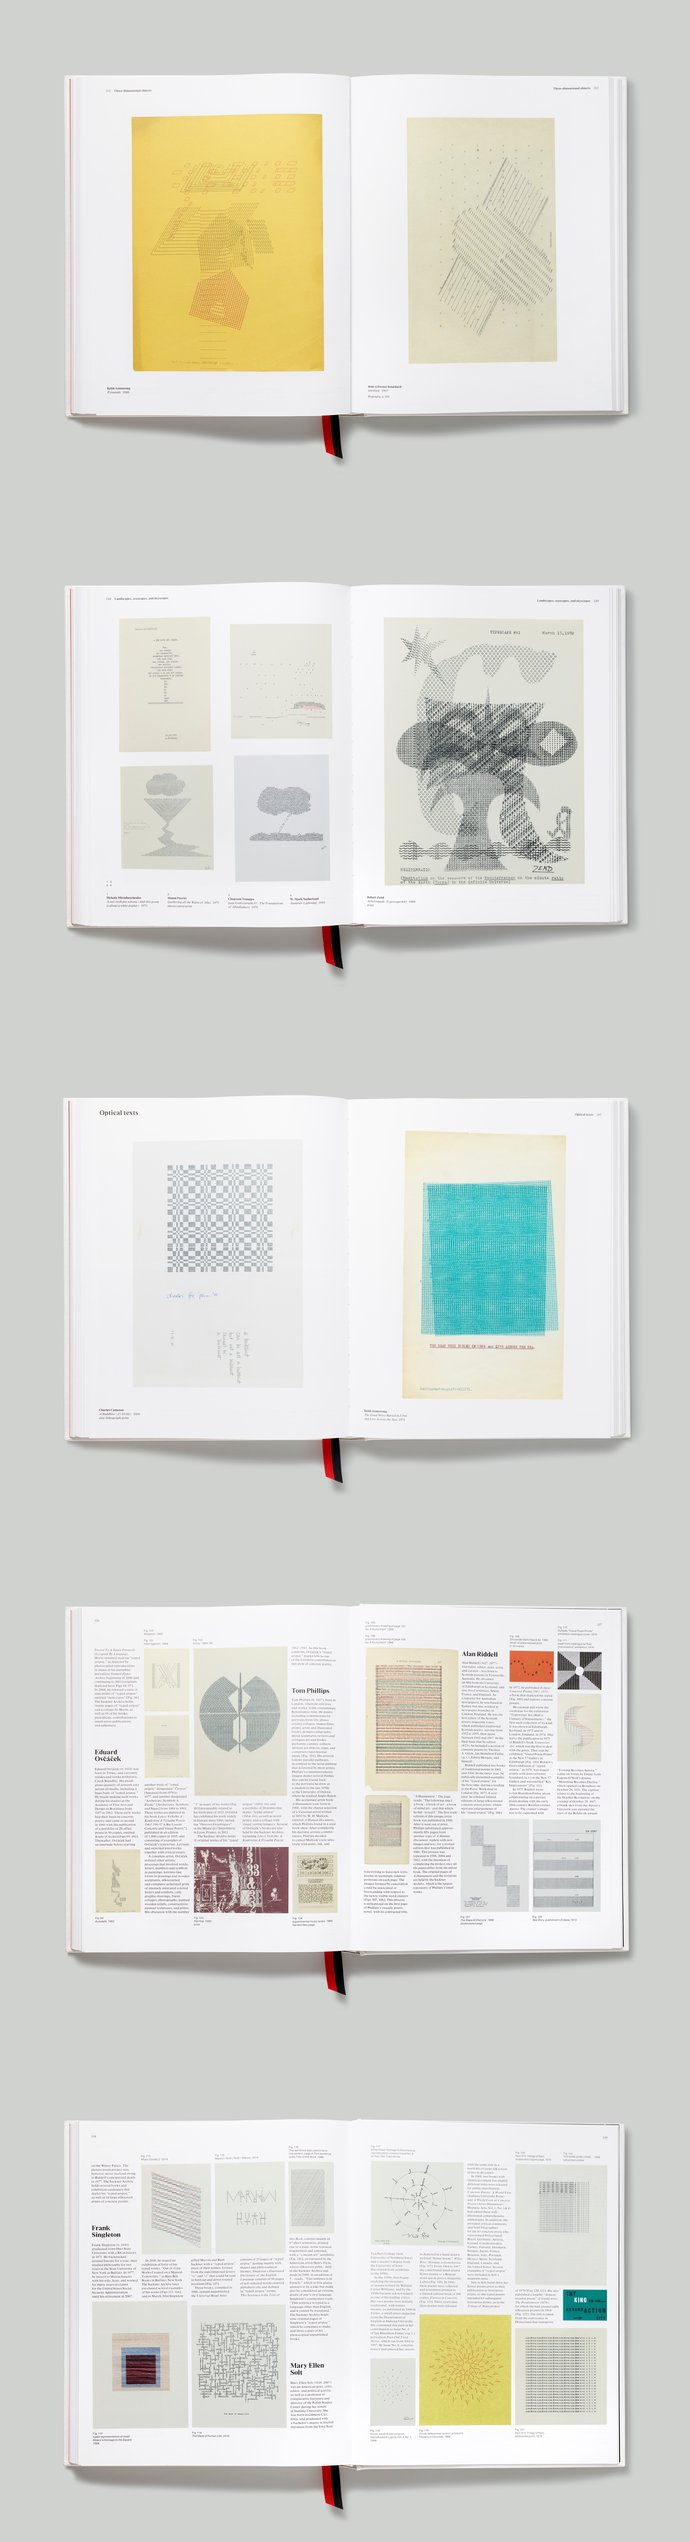 Thames & Hudson – The art of typewriting, 2015 (Publication), image 3